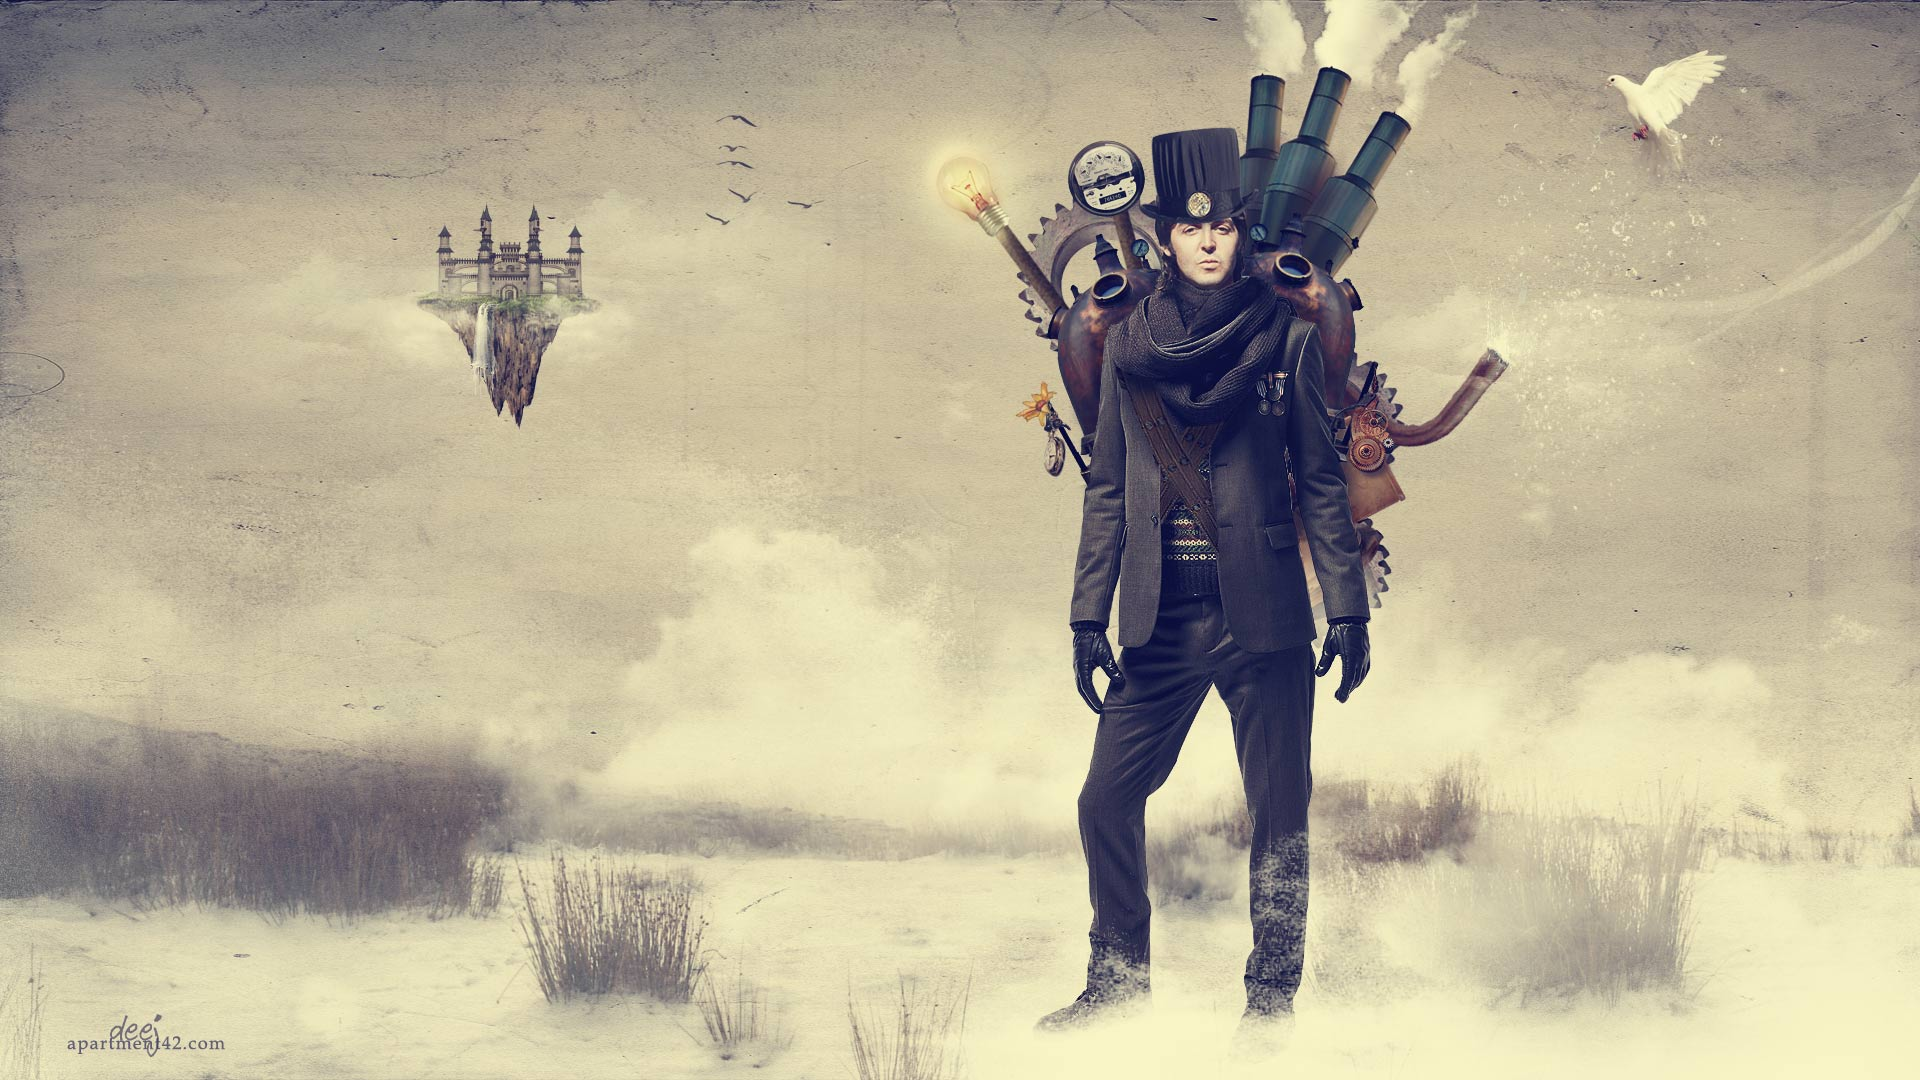 1920x1080 - Steampunk Wallpapers 12